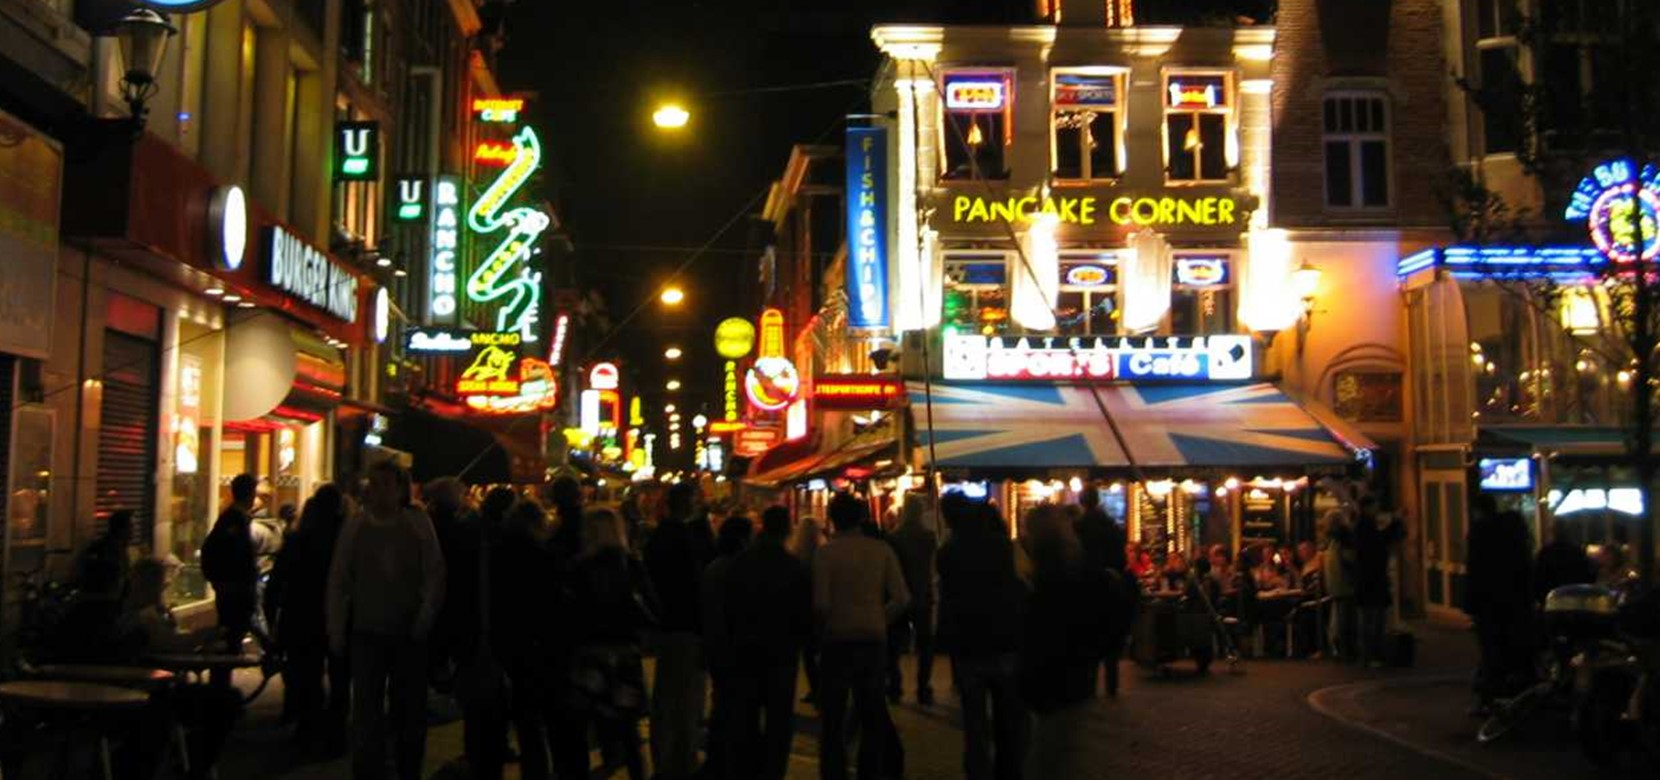 The nightlife of Amsterdam is famous for its parties